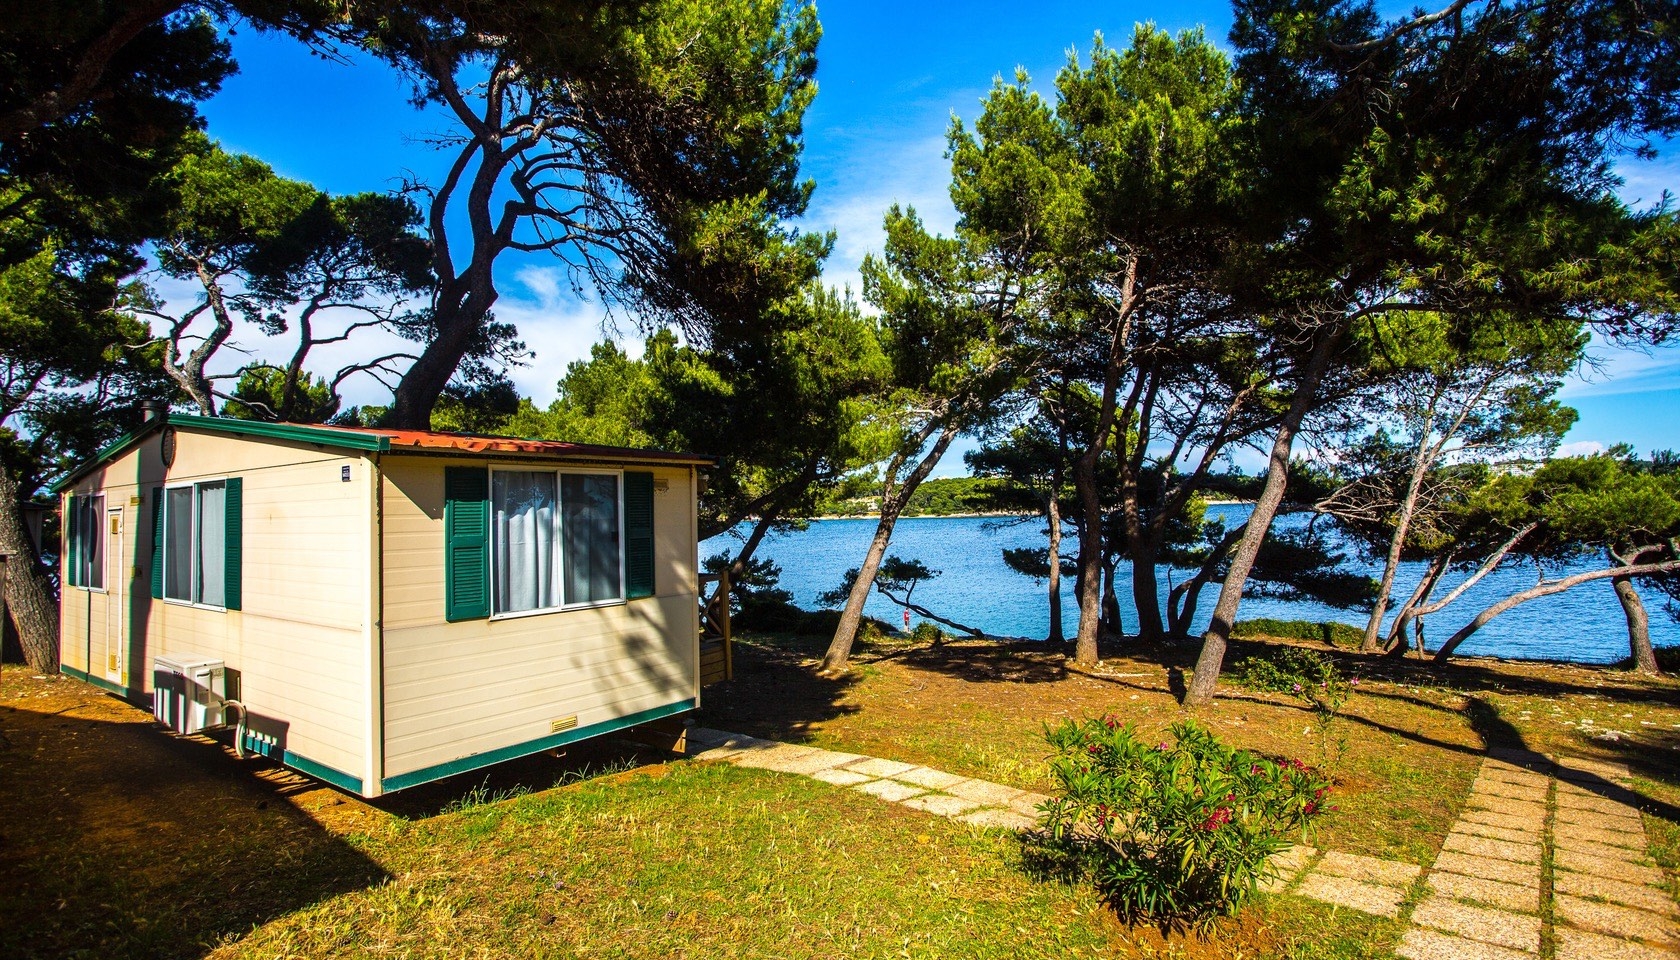 Arena Stoja Mobile Homes | Mobile Homes | Arenacampsites on camping cars, camping parks, camping fences, camping sheds, rv park model homes, camping tents, camping photography, camping at home, camping trailers, camping nursery mobile,